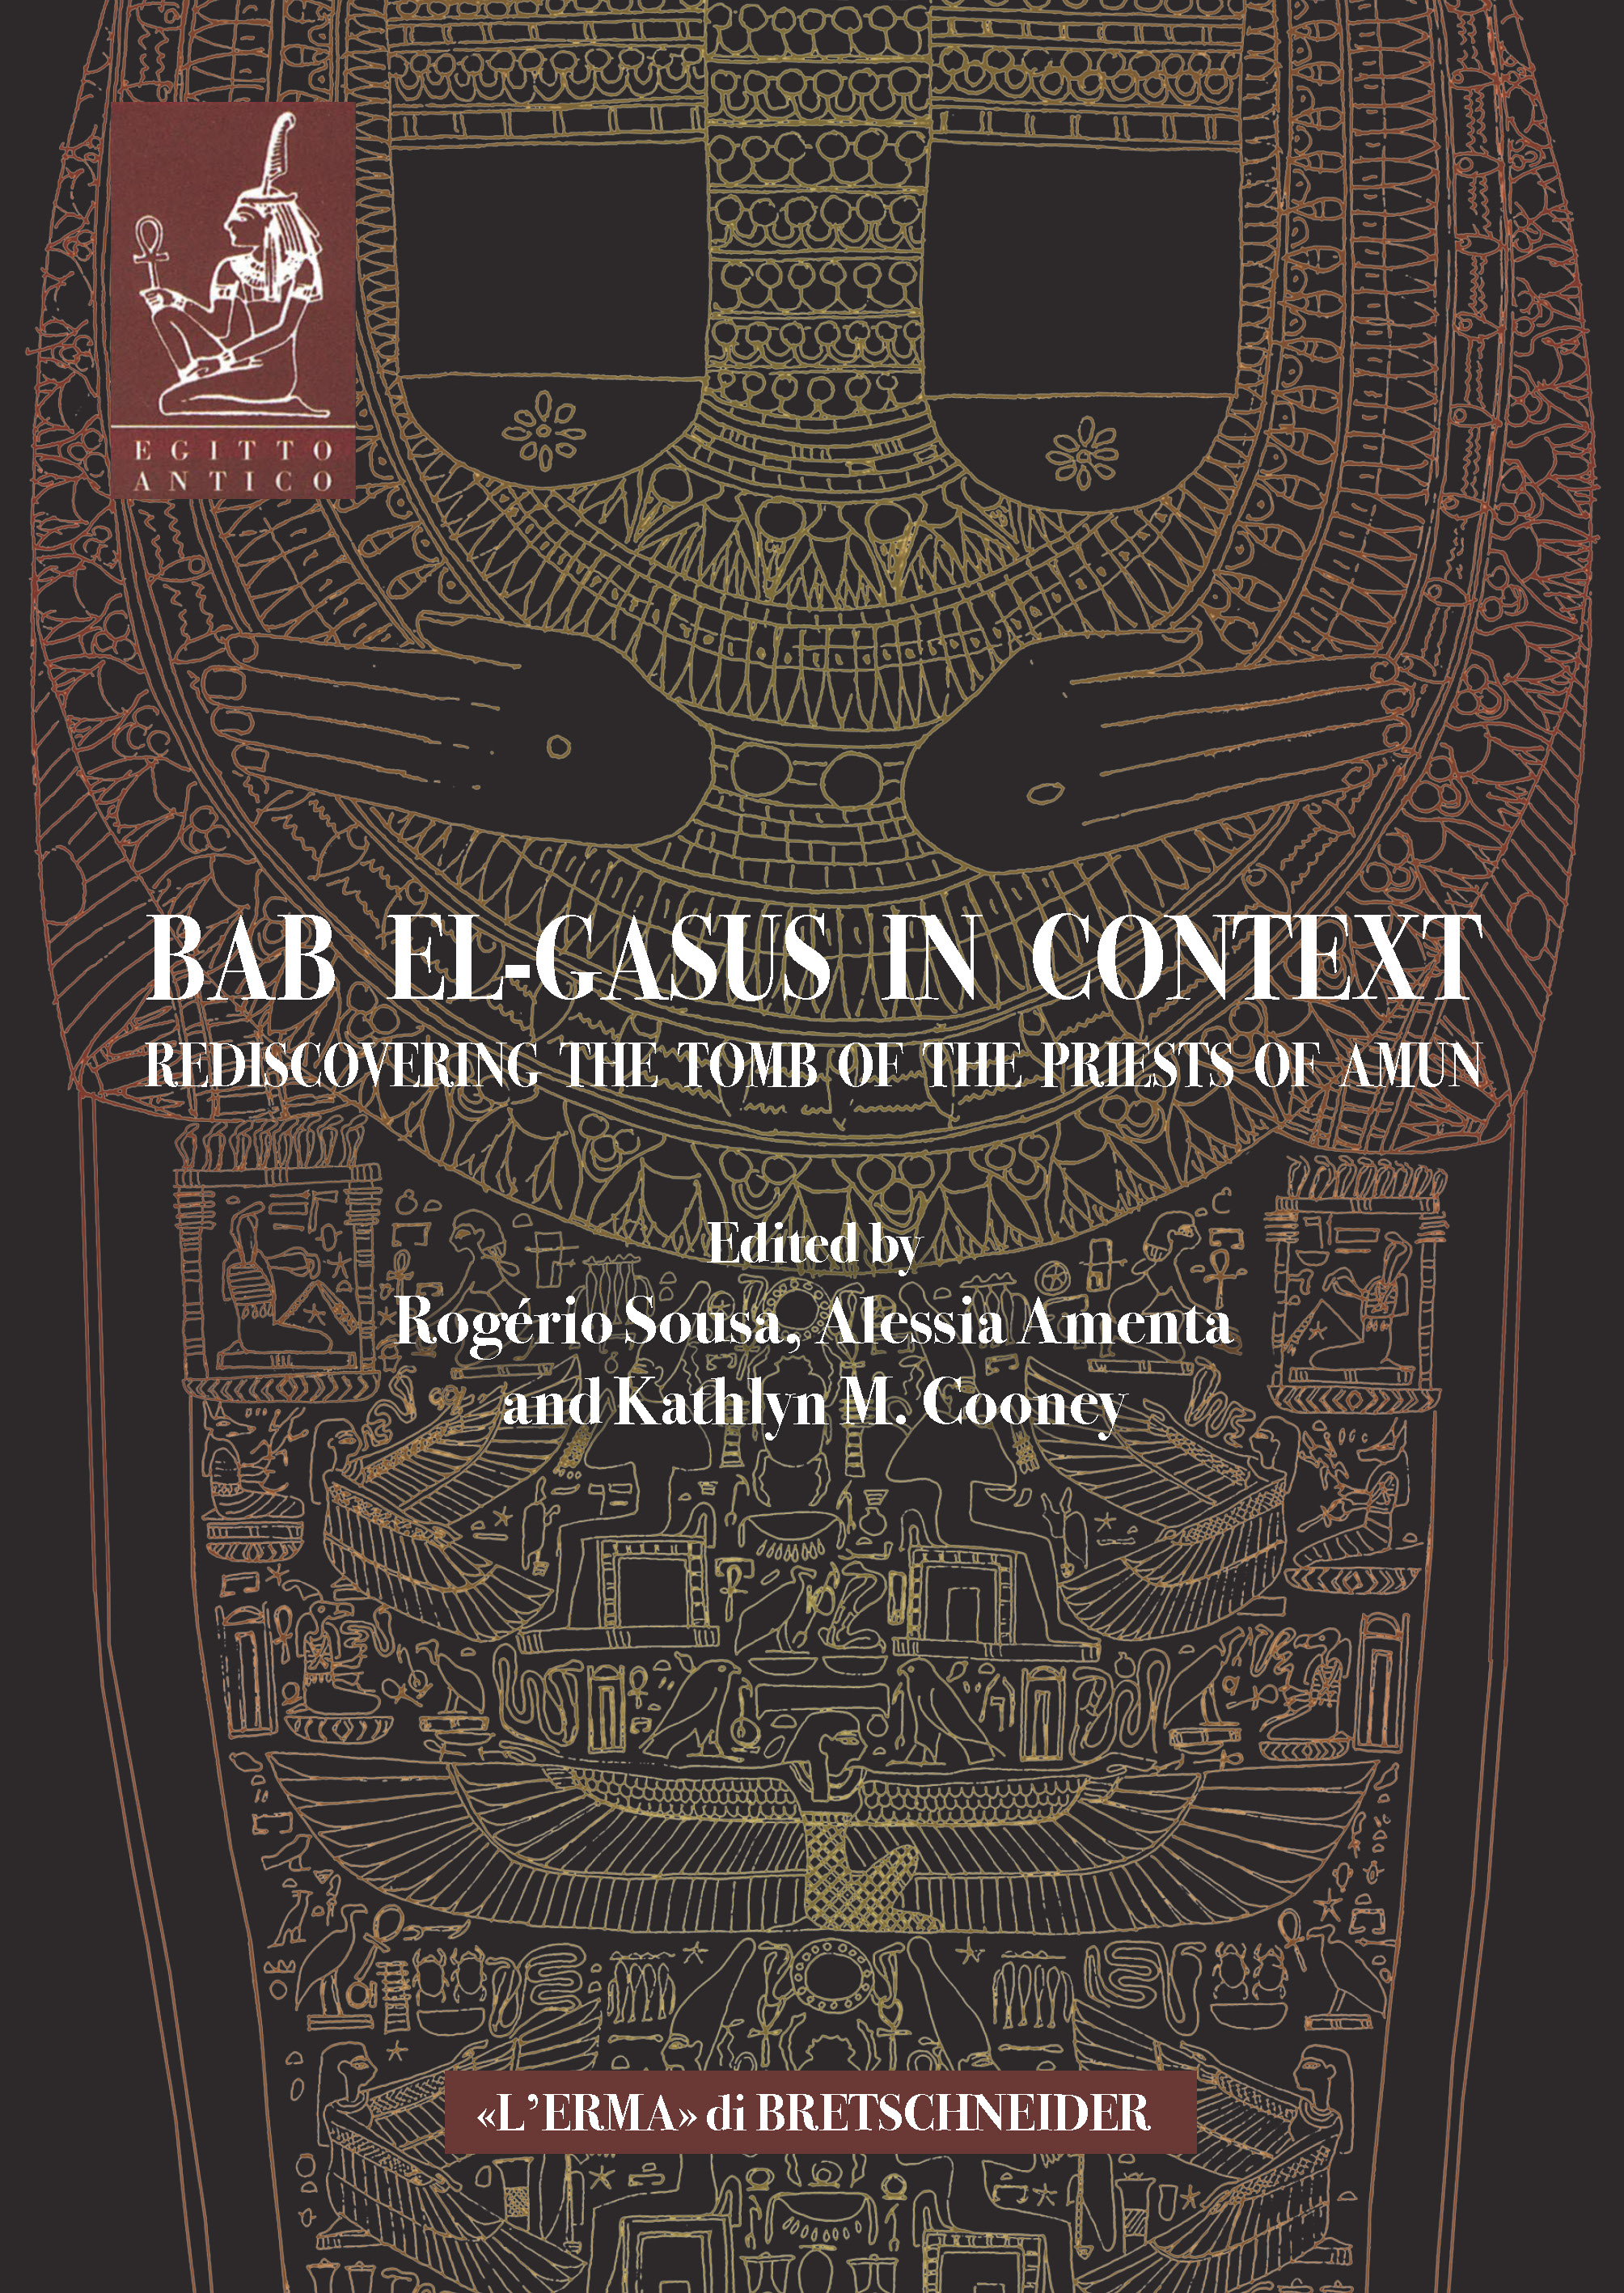 Bab El-Gasus in Context: Rediscovering the Tomb of the priests of Amun